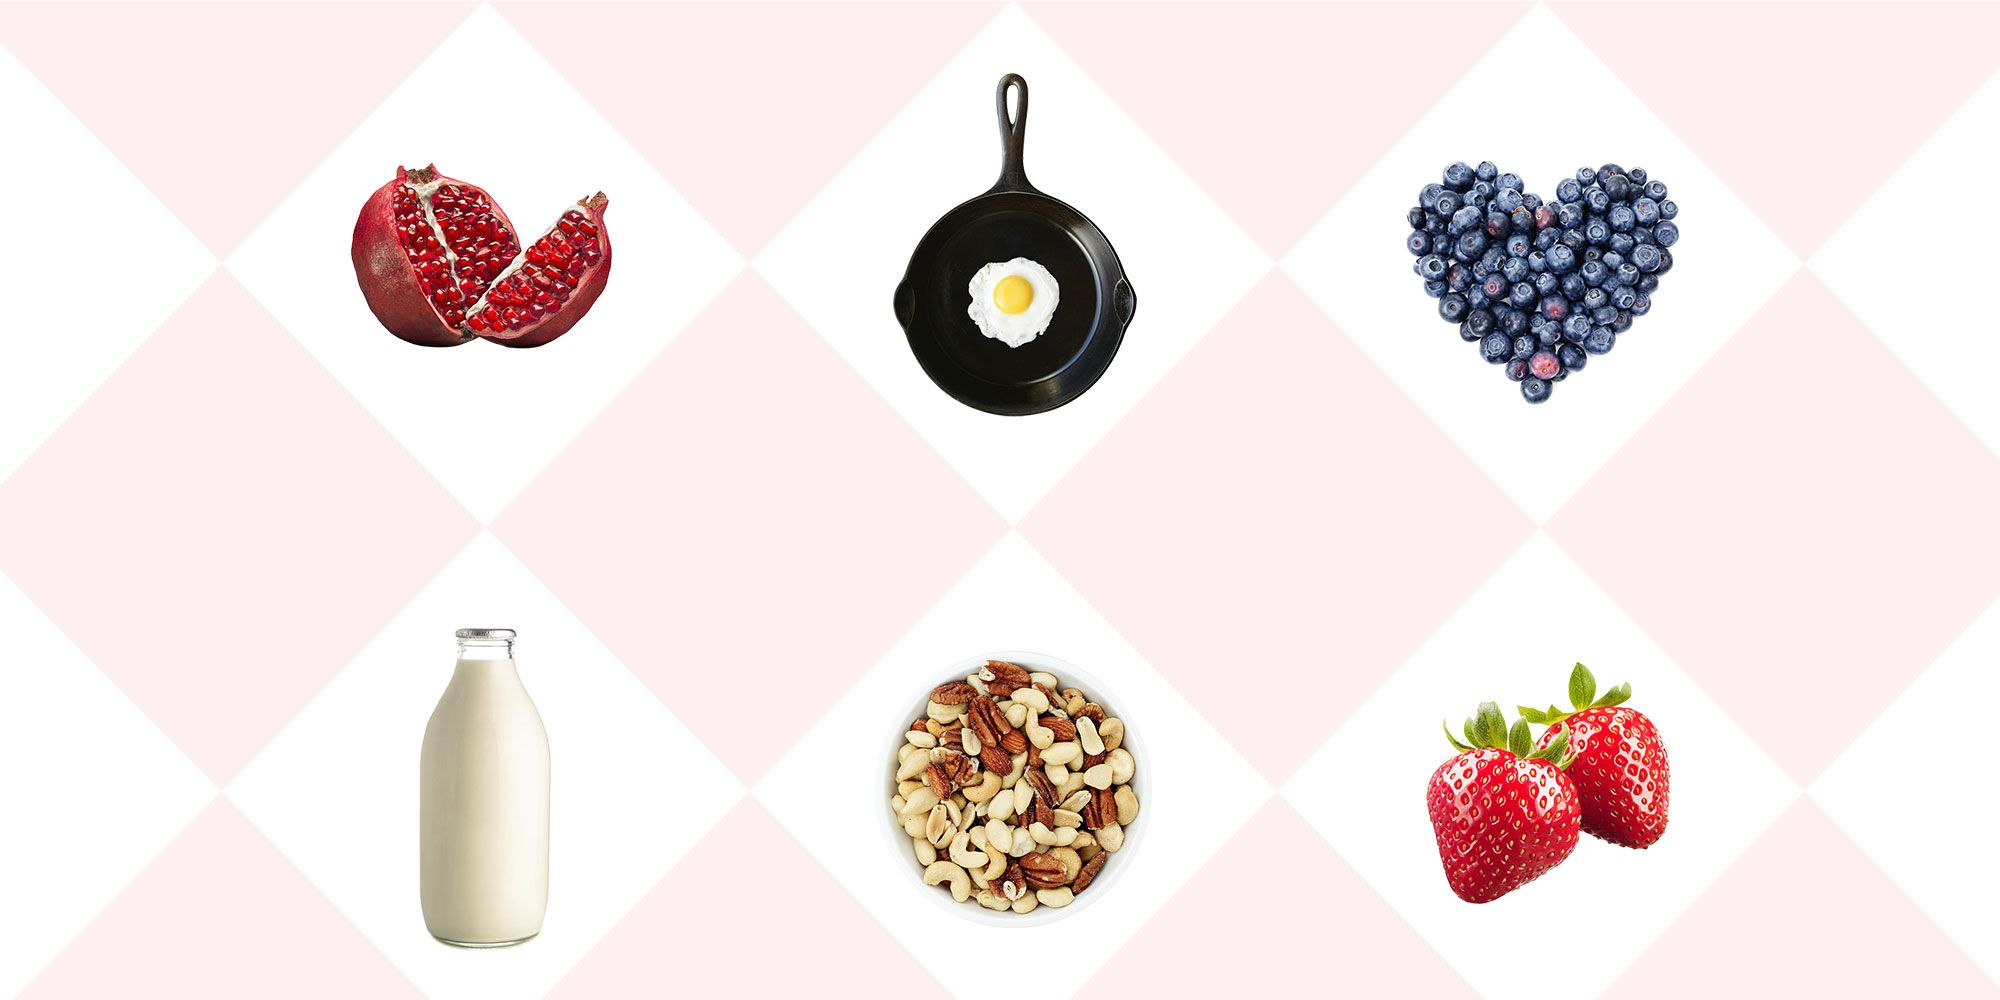 10 Superfoods That Help Slow Aging The Best Anti Aging Foods